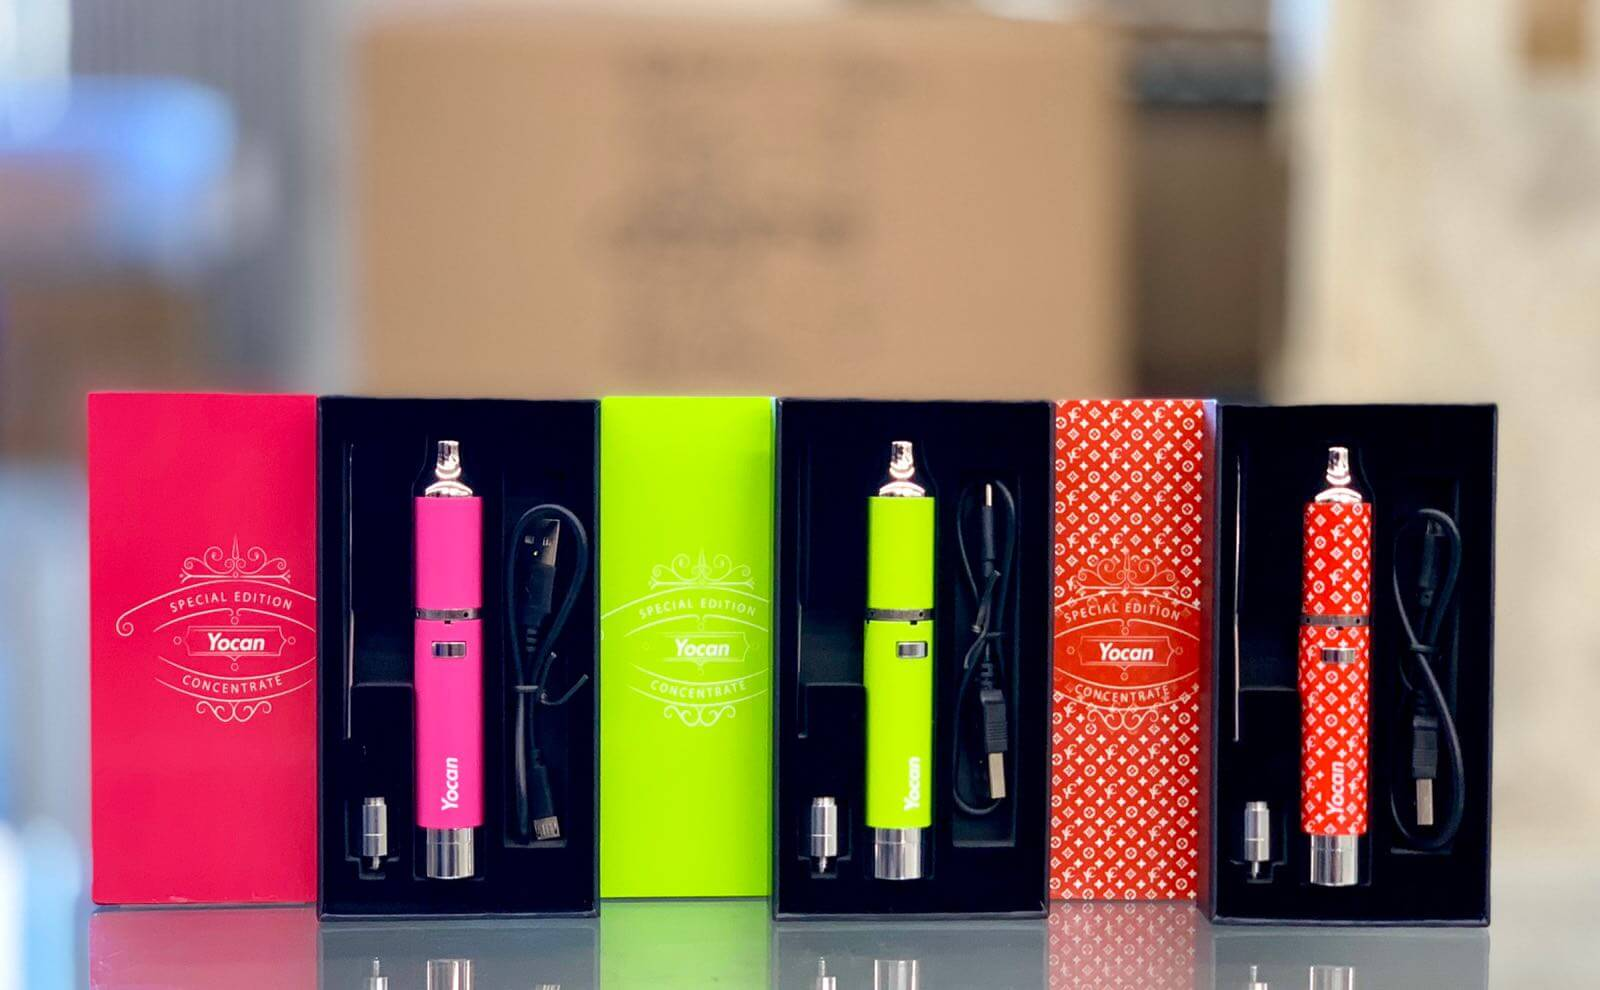 Yocan Evolve Plus Special Edition